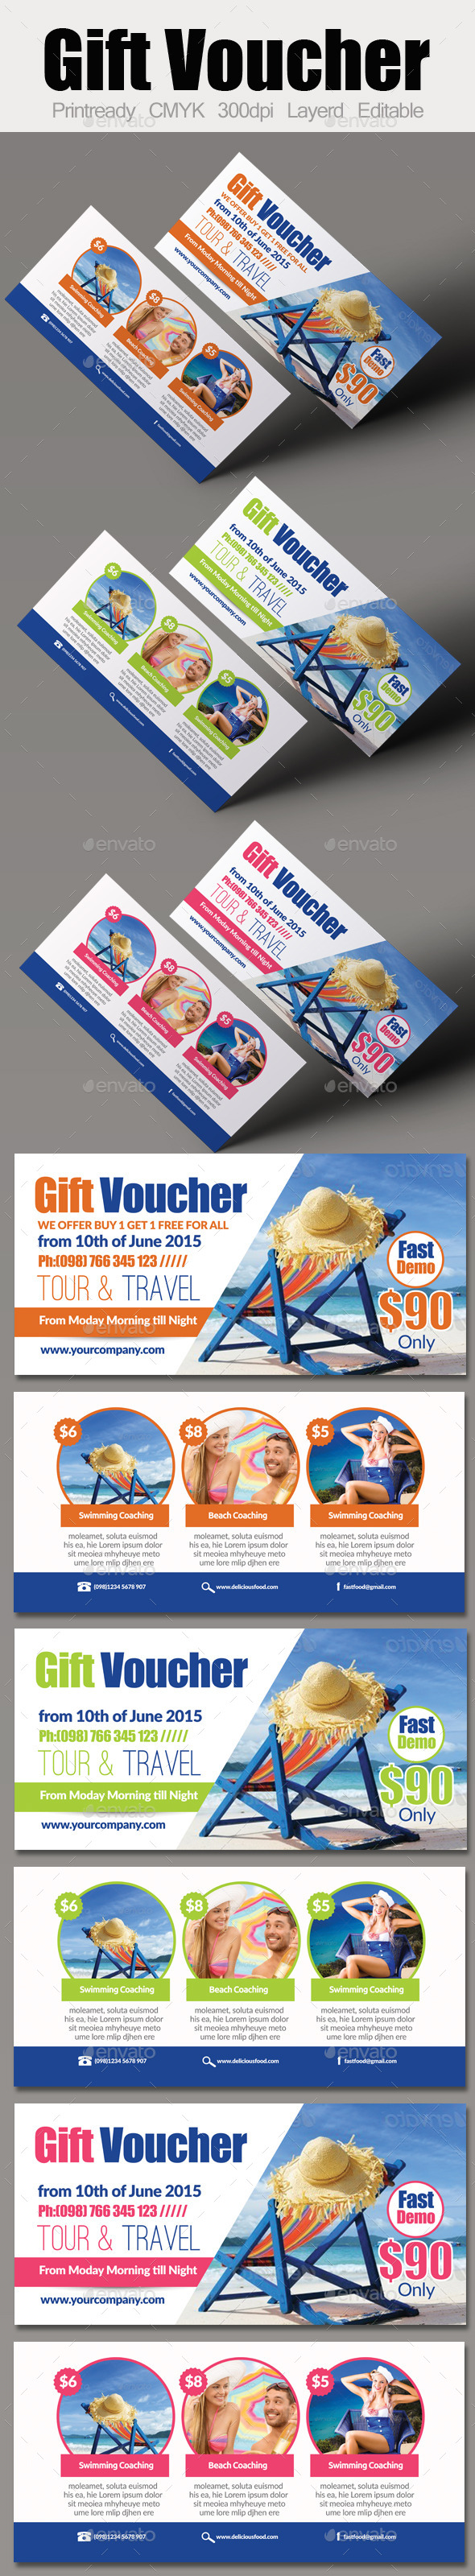 Tour Travel Gift Voucher